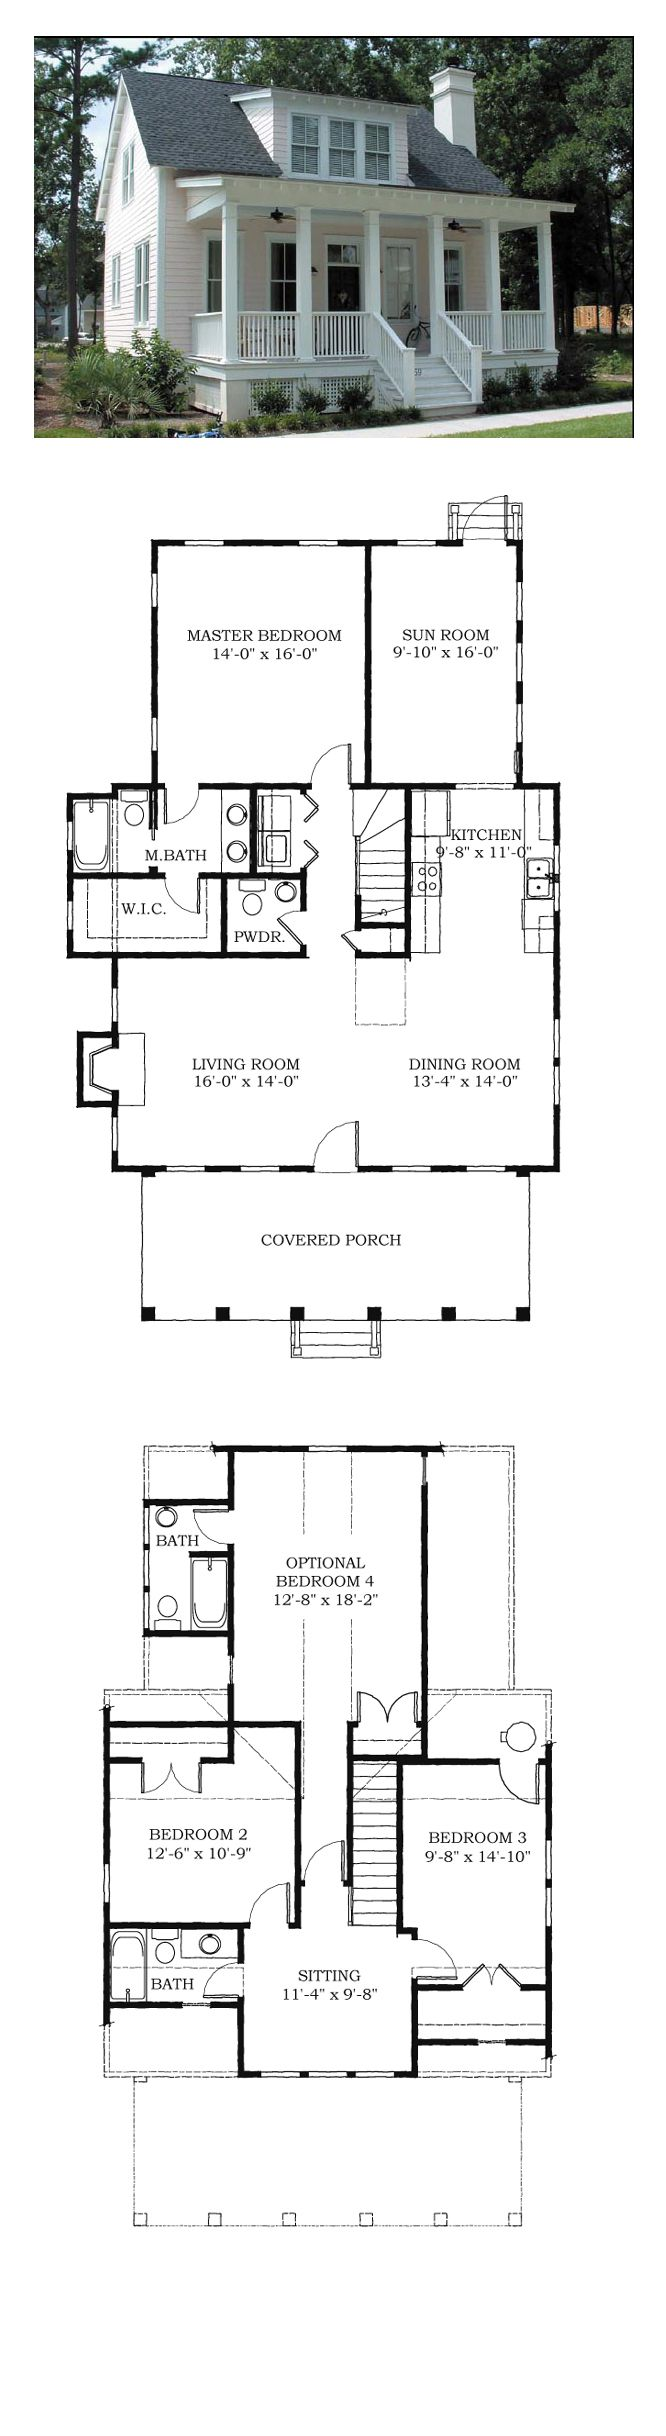 Awesome COOL House Plan ID: Chp 38703 | Total Living Area: 1783 Sq.